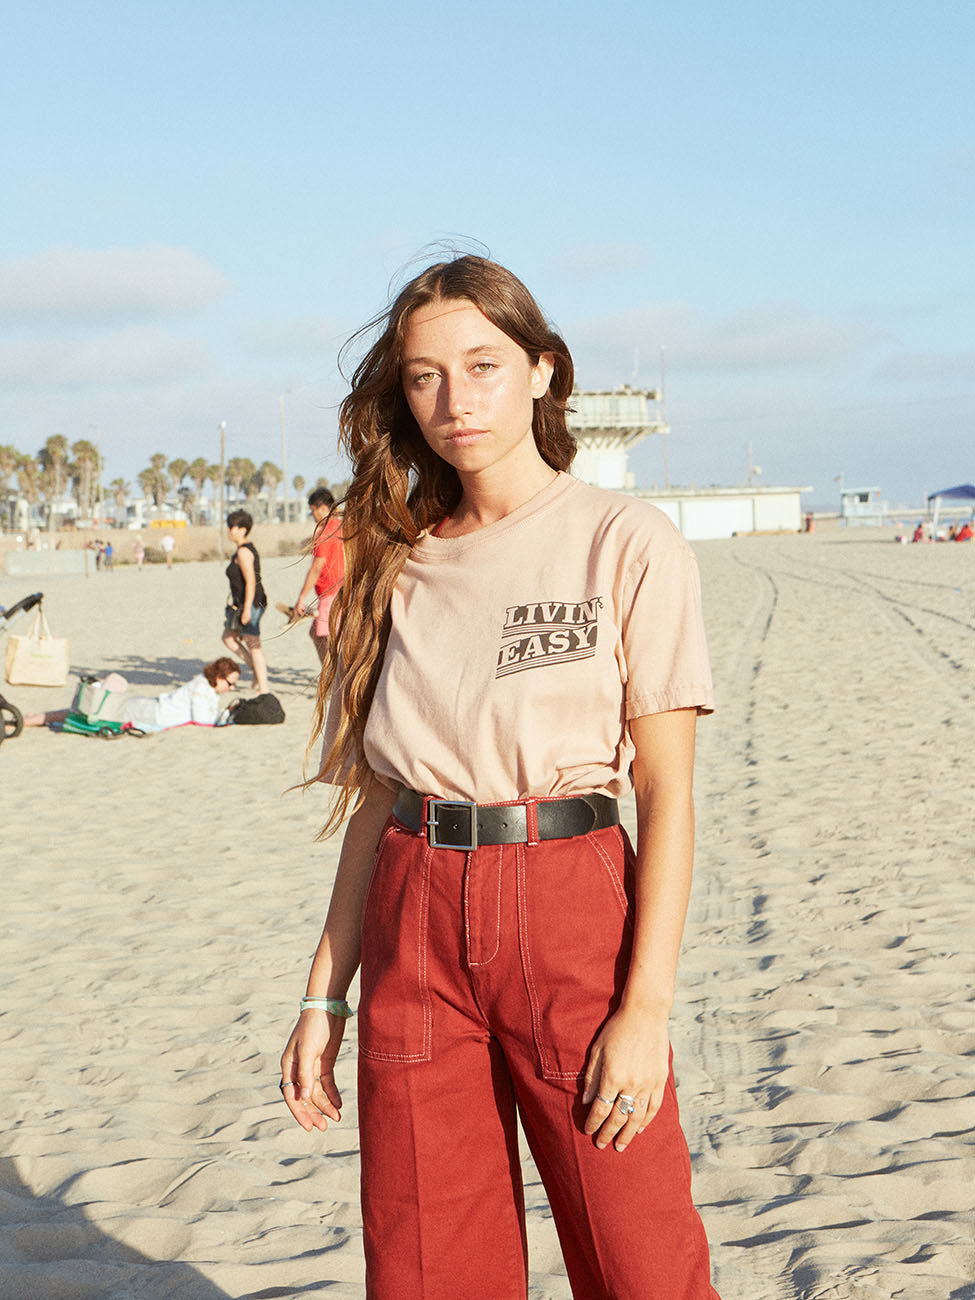 Livin' Easy Organic Cotton Band Tee